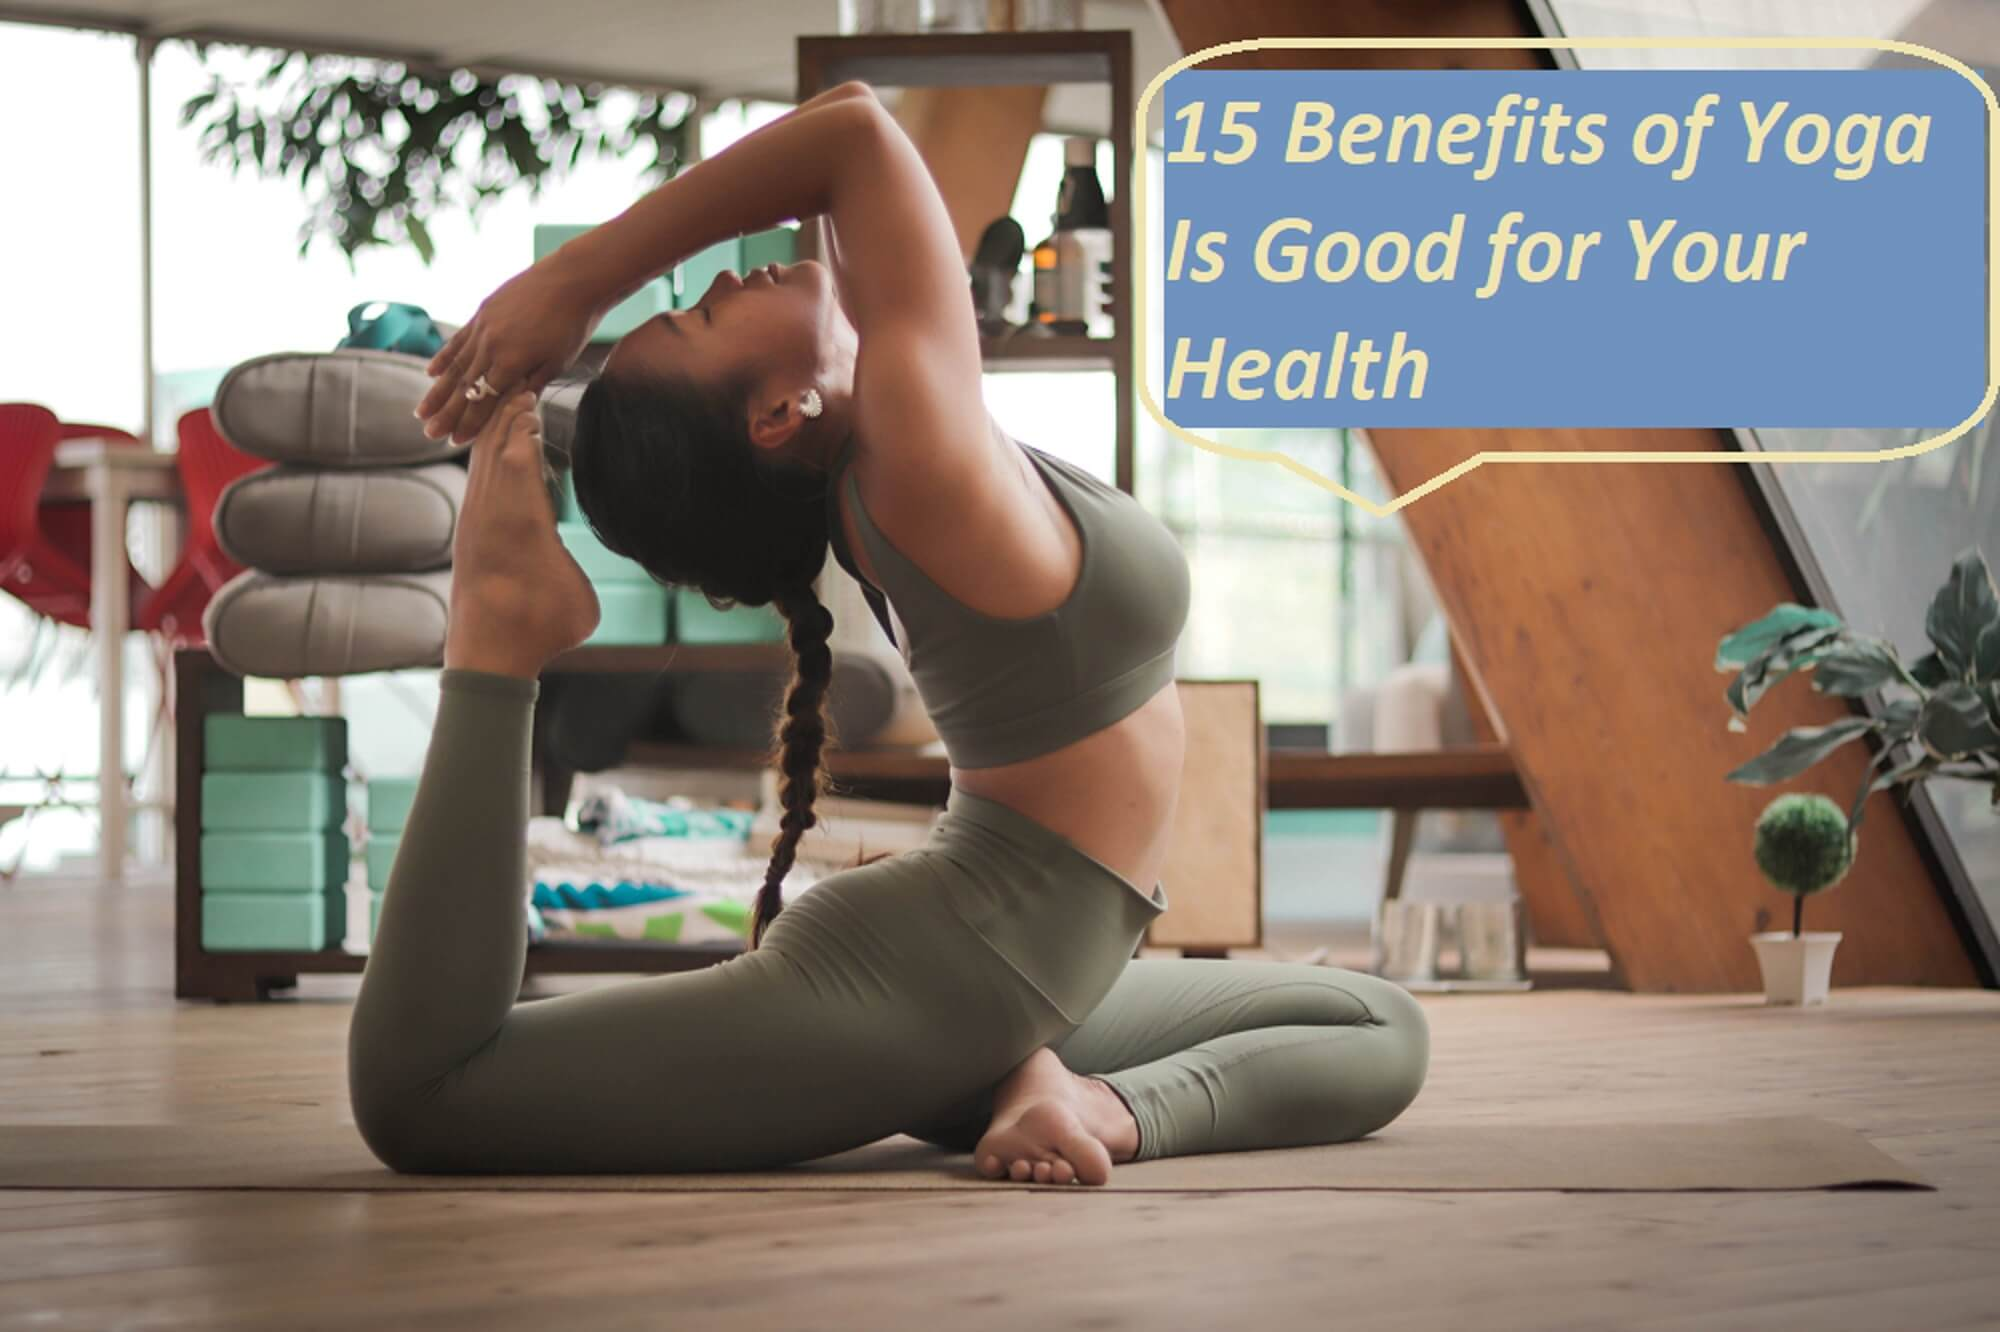 Benefits of Yoga Is Good for Your Health